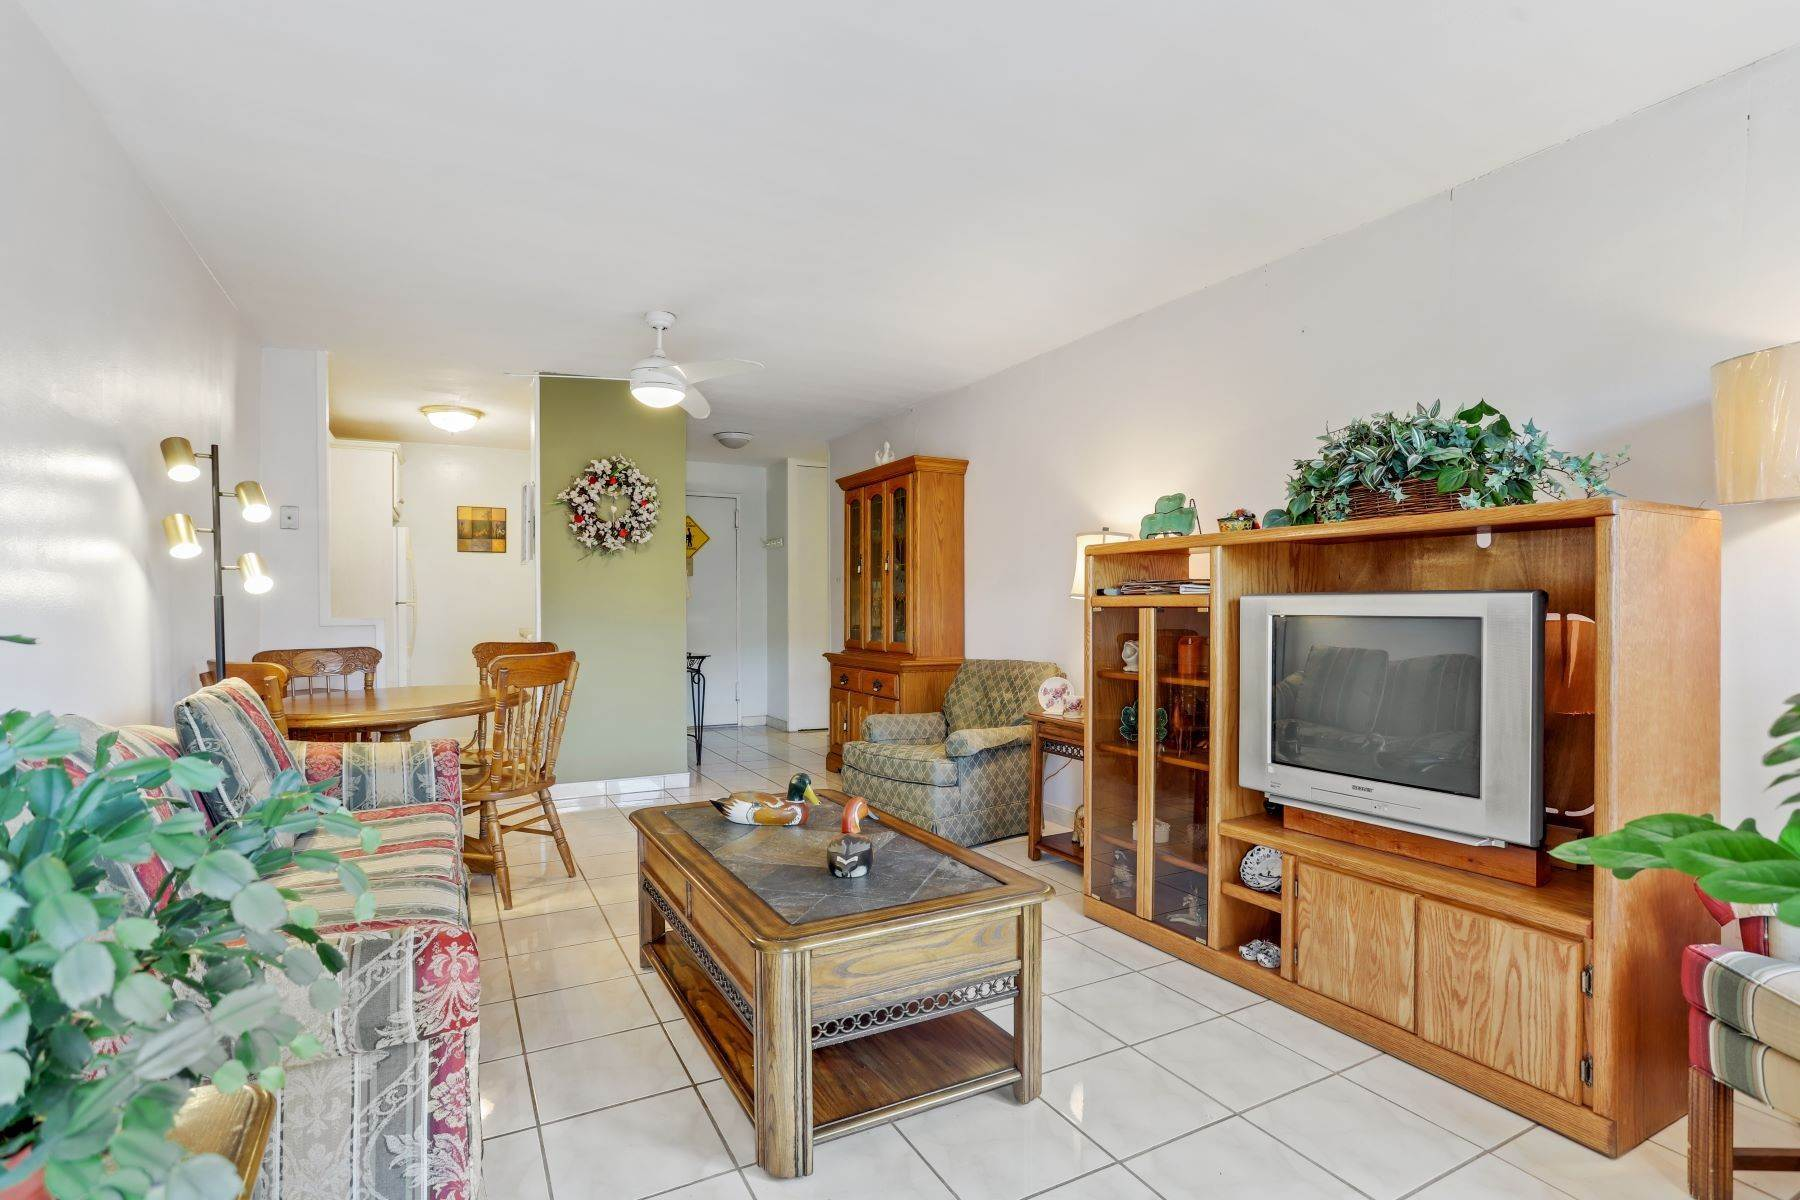 Co-op Properties for Sale at The Fountains of Clove Lake 1000 Clove Road, 3B Staten Island, New York 10310 United States